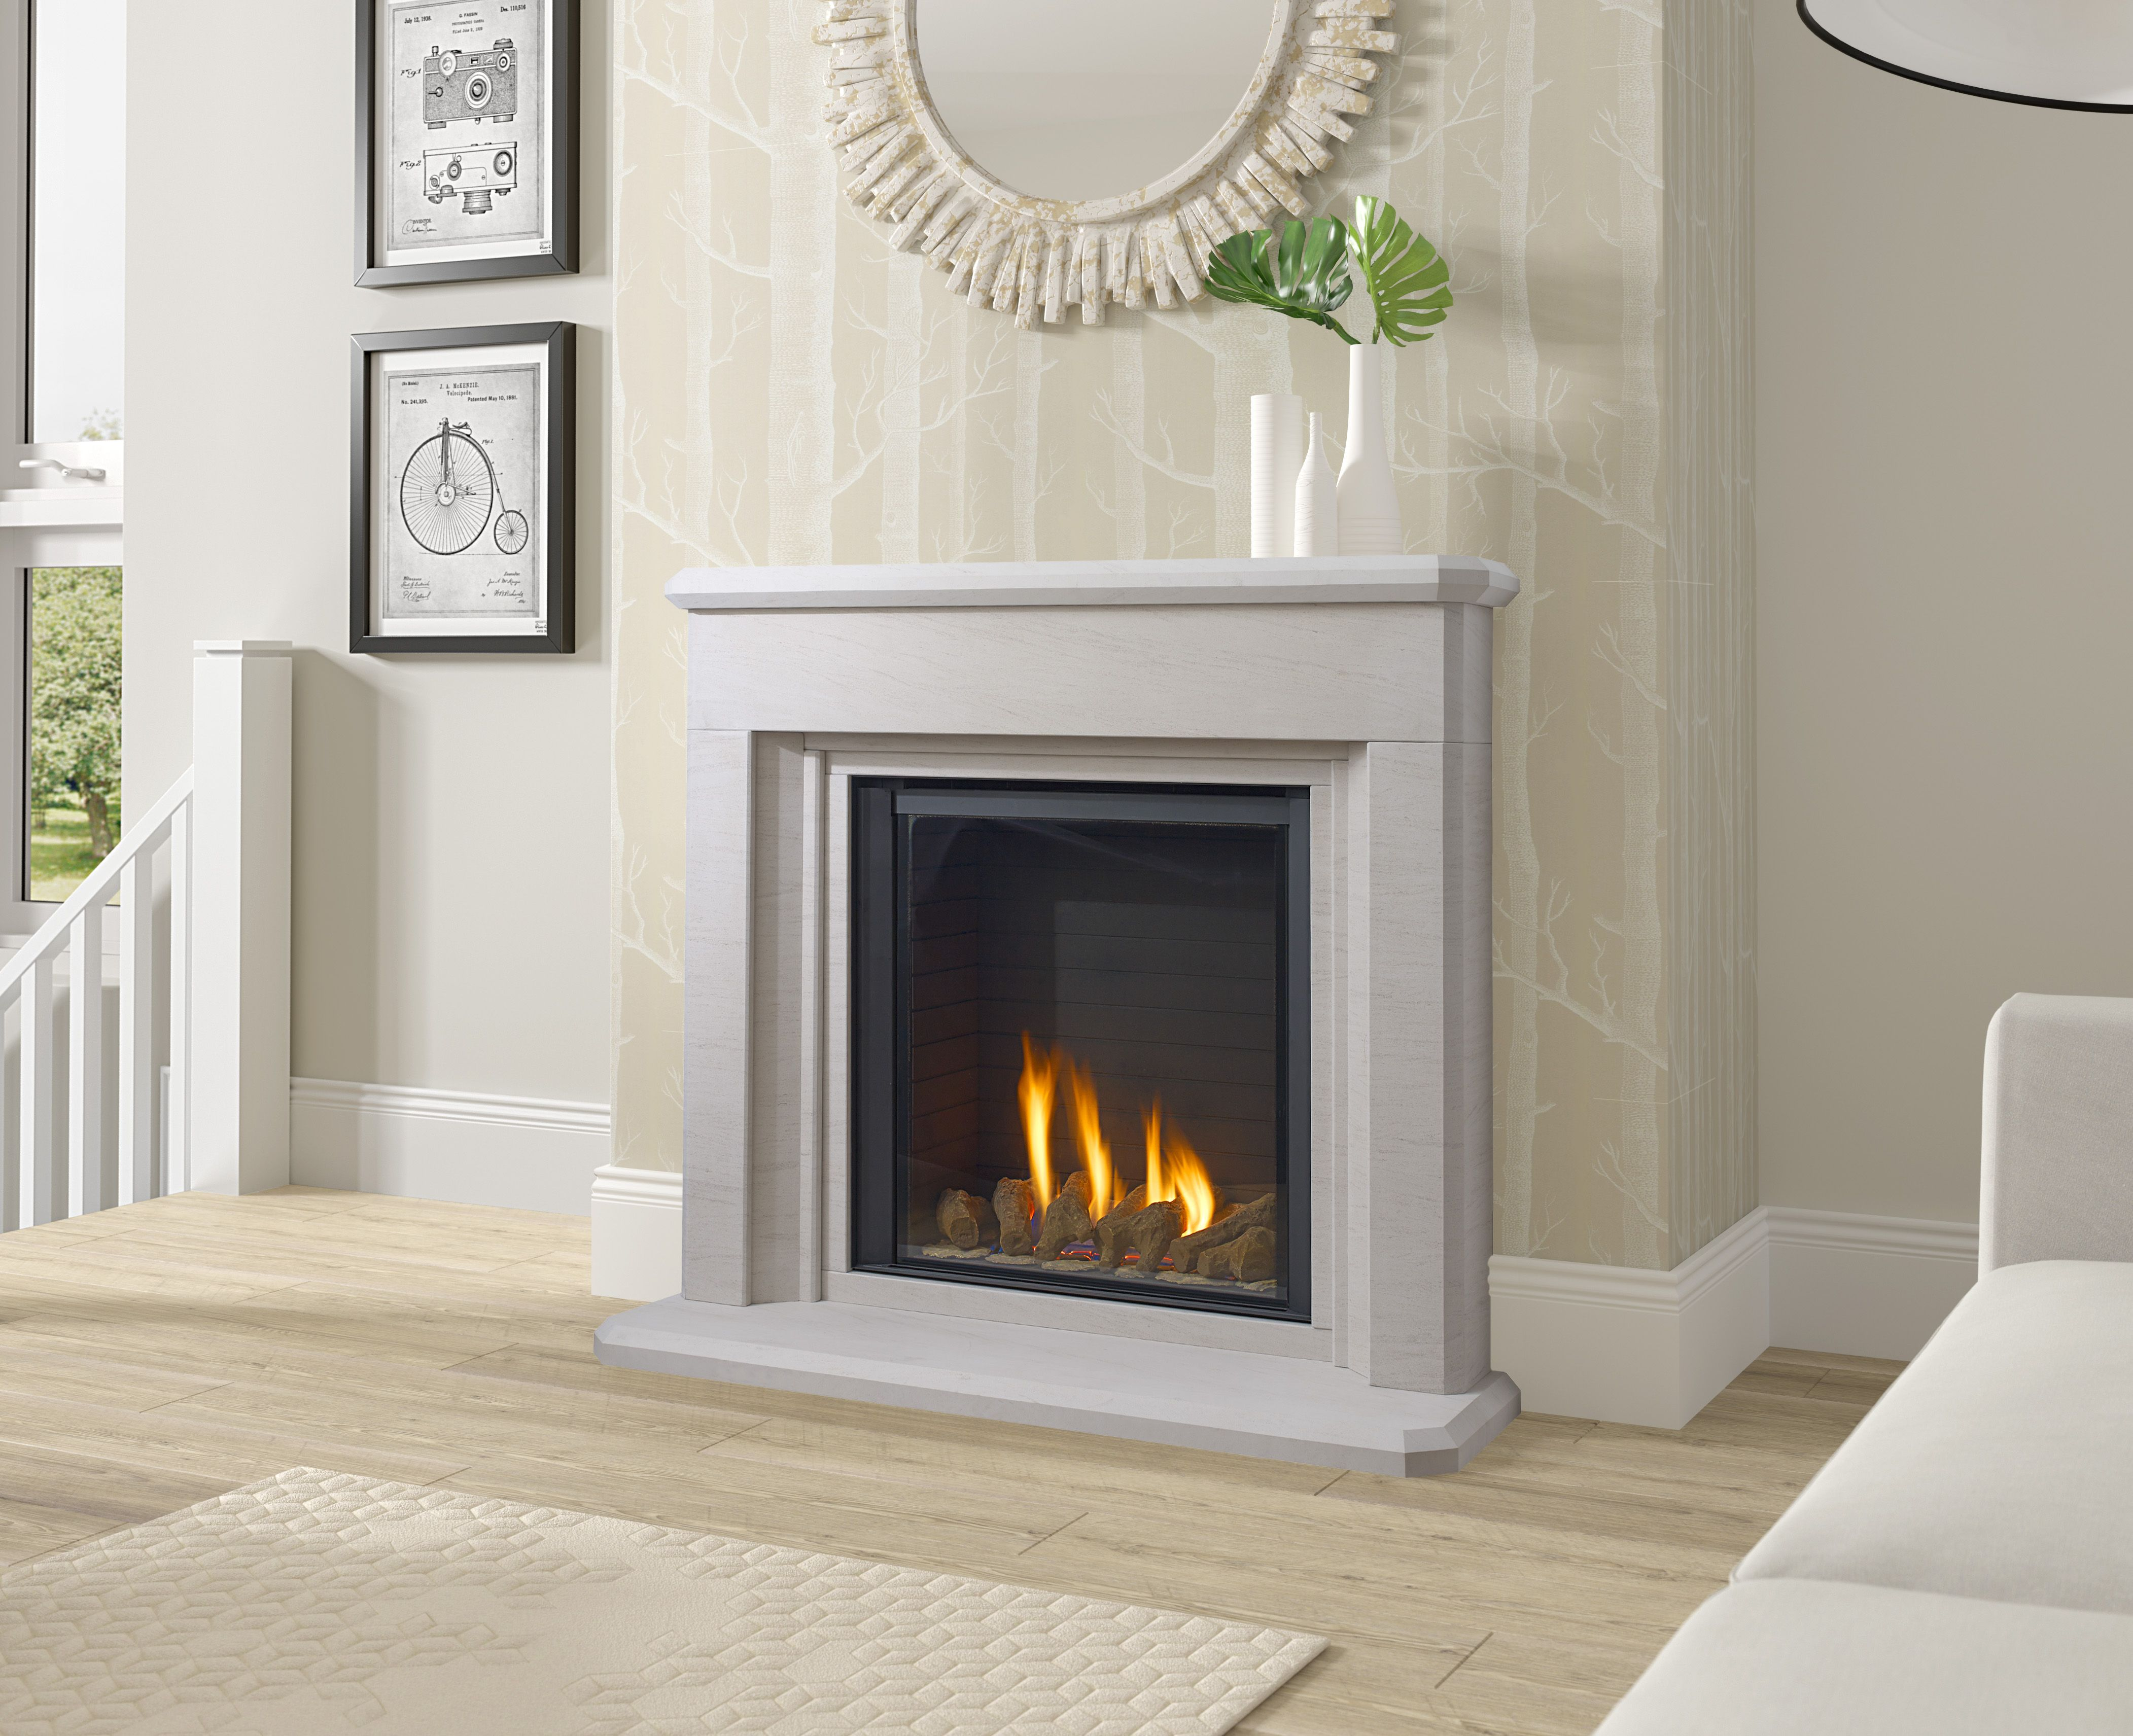 Introducing our new Paragon P9 Gas Fire...To locate a Paragon showroom near  you visit http://www.charltonandjenrick.co.uk/brands/paragon/store-locator/